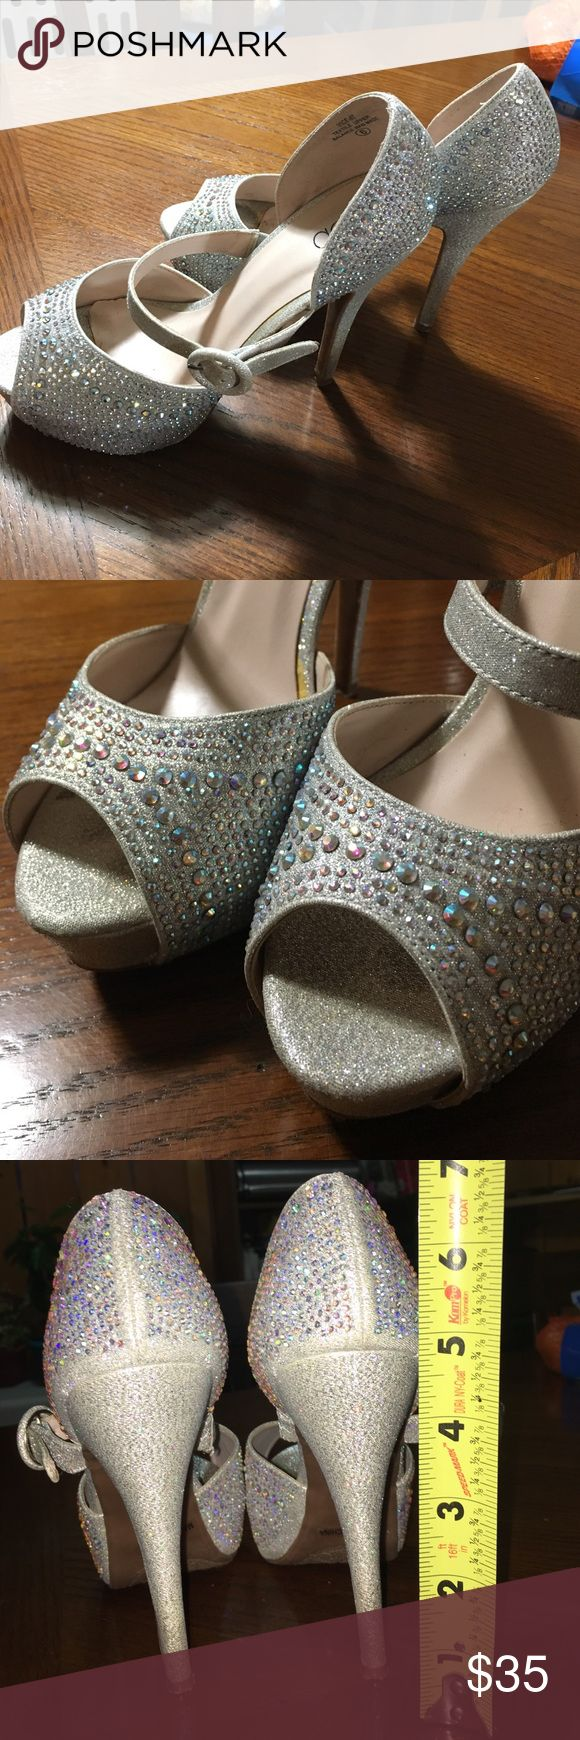 Cute Tall High Heels for Prom Sparkly heels worn for my prom. They look perfect on your foot but there are minimal signs of wear inside. Otherwise great condition! (I'm 5'1 and these added a wonderful amount of height :) ) Deb Shoes Heels